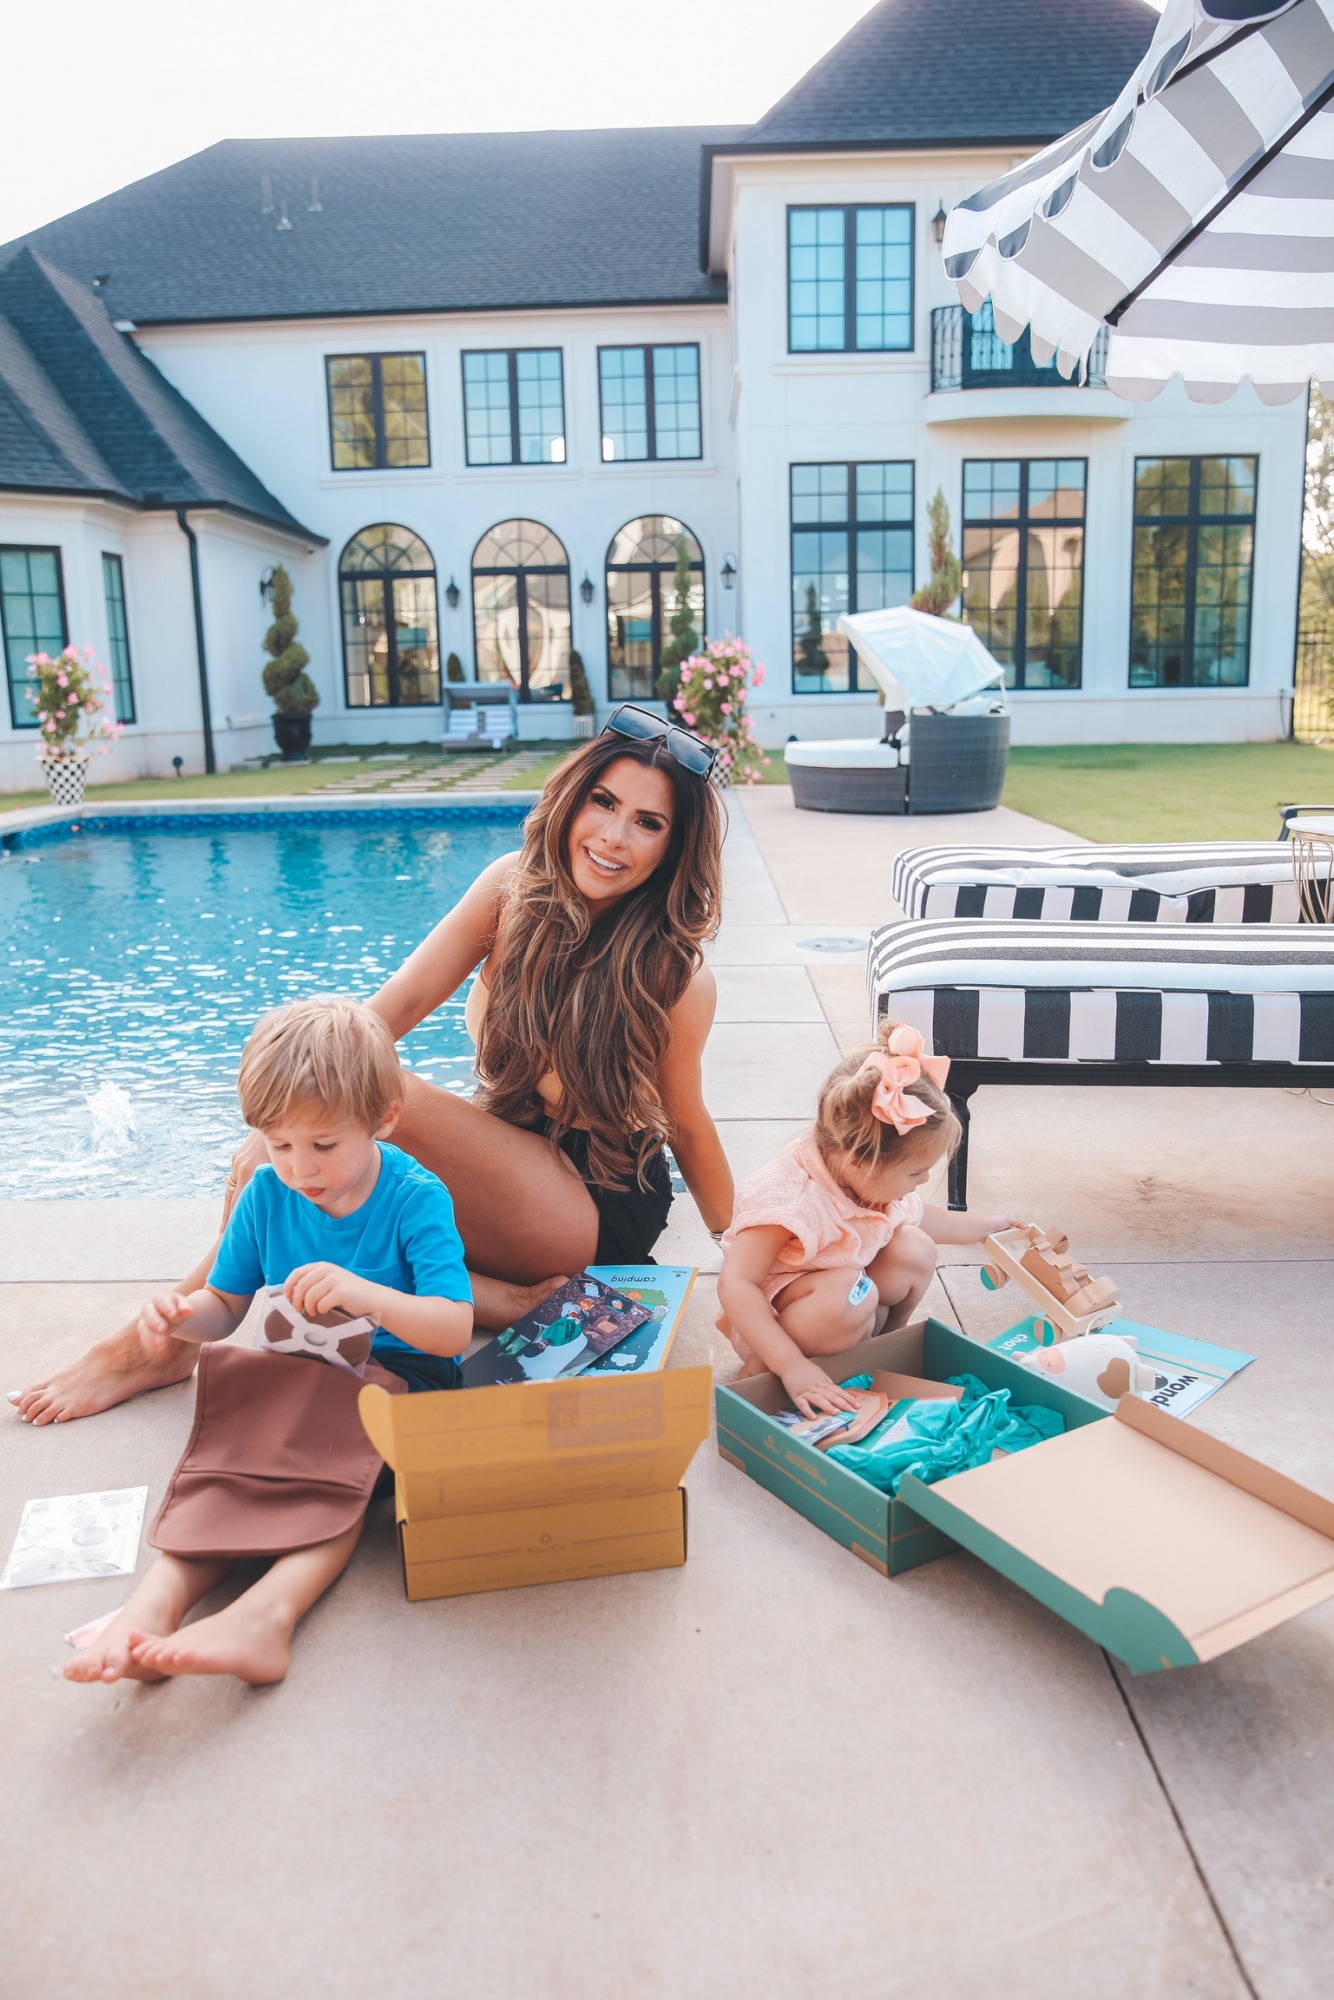 Emily Ann Gemma Family, Luke Gemma, Sophia Gemma, Kids Toys, Kids Educational Toys, KiwiCo. , Best toys and activities for kids, summer activities for kids   Instagram Recap by popular US life and style blog, The Sweetest Thing: image of Emily Gemma and her two kids sitting by their pool and opening some KiwiCo boxes.